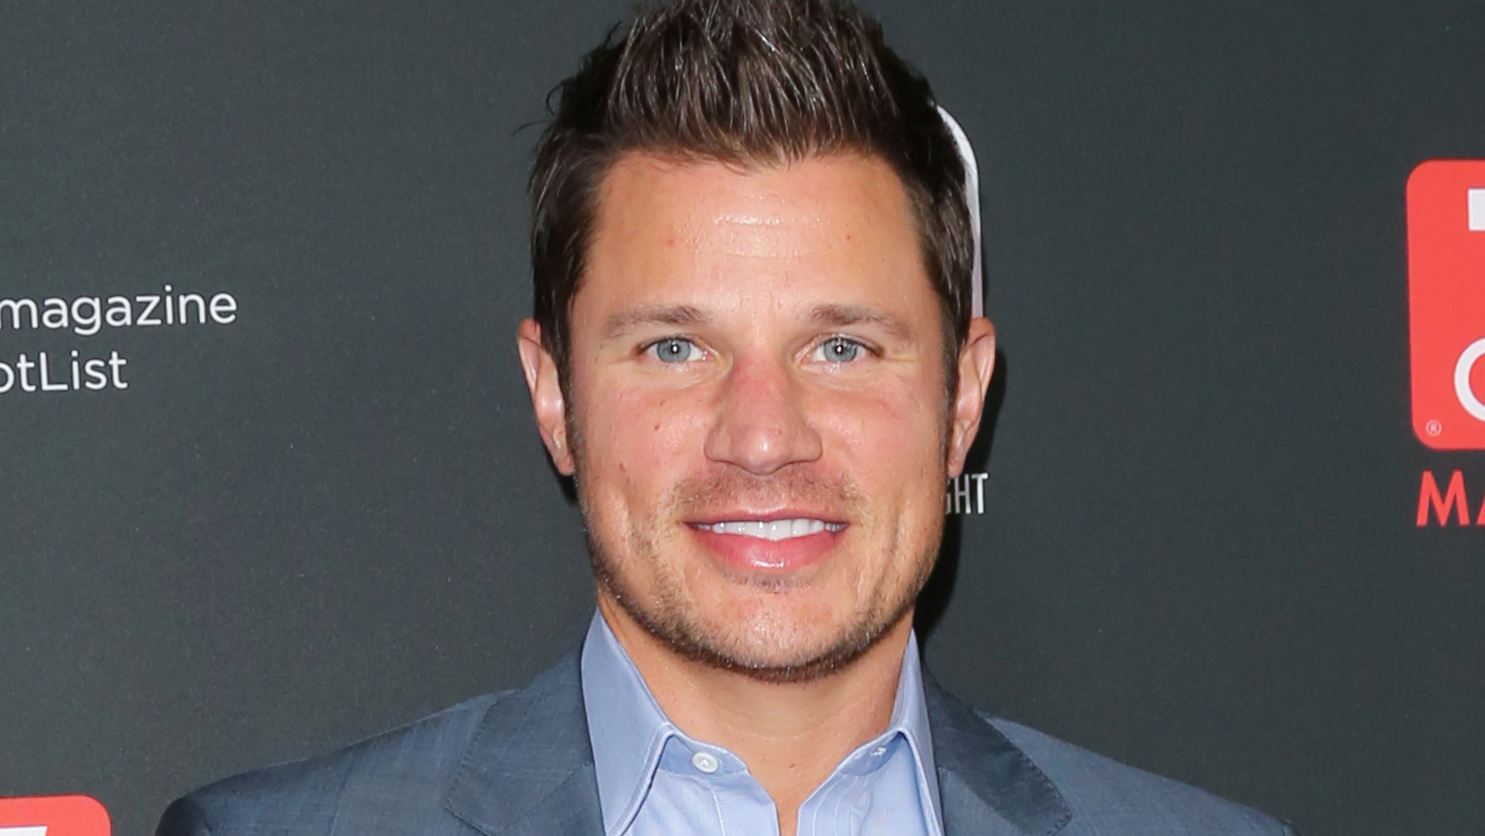 PHOTO:Nick Lachey attends TV Guide magazine's annual Hot List Party at The Emerson Theatre, Nov. 4, 2013, in Hollywood, Calif.